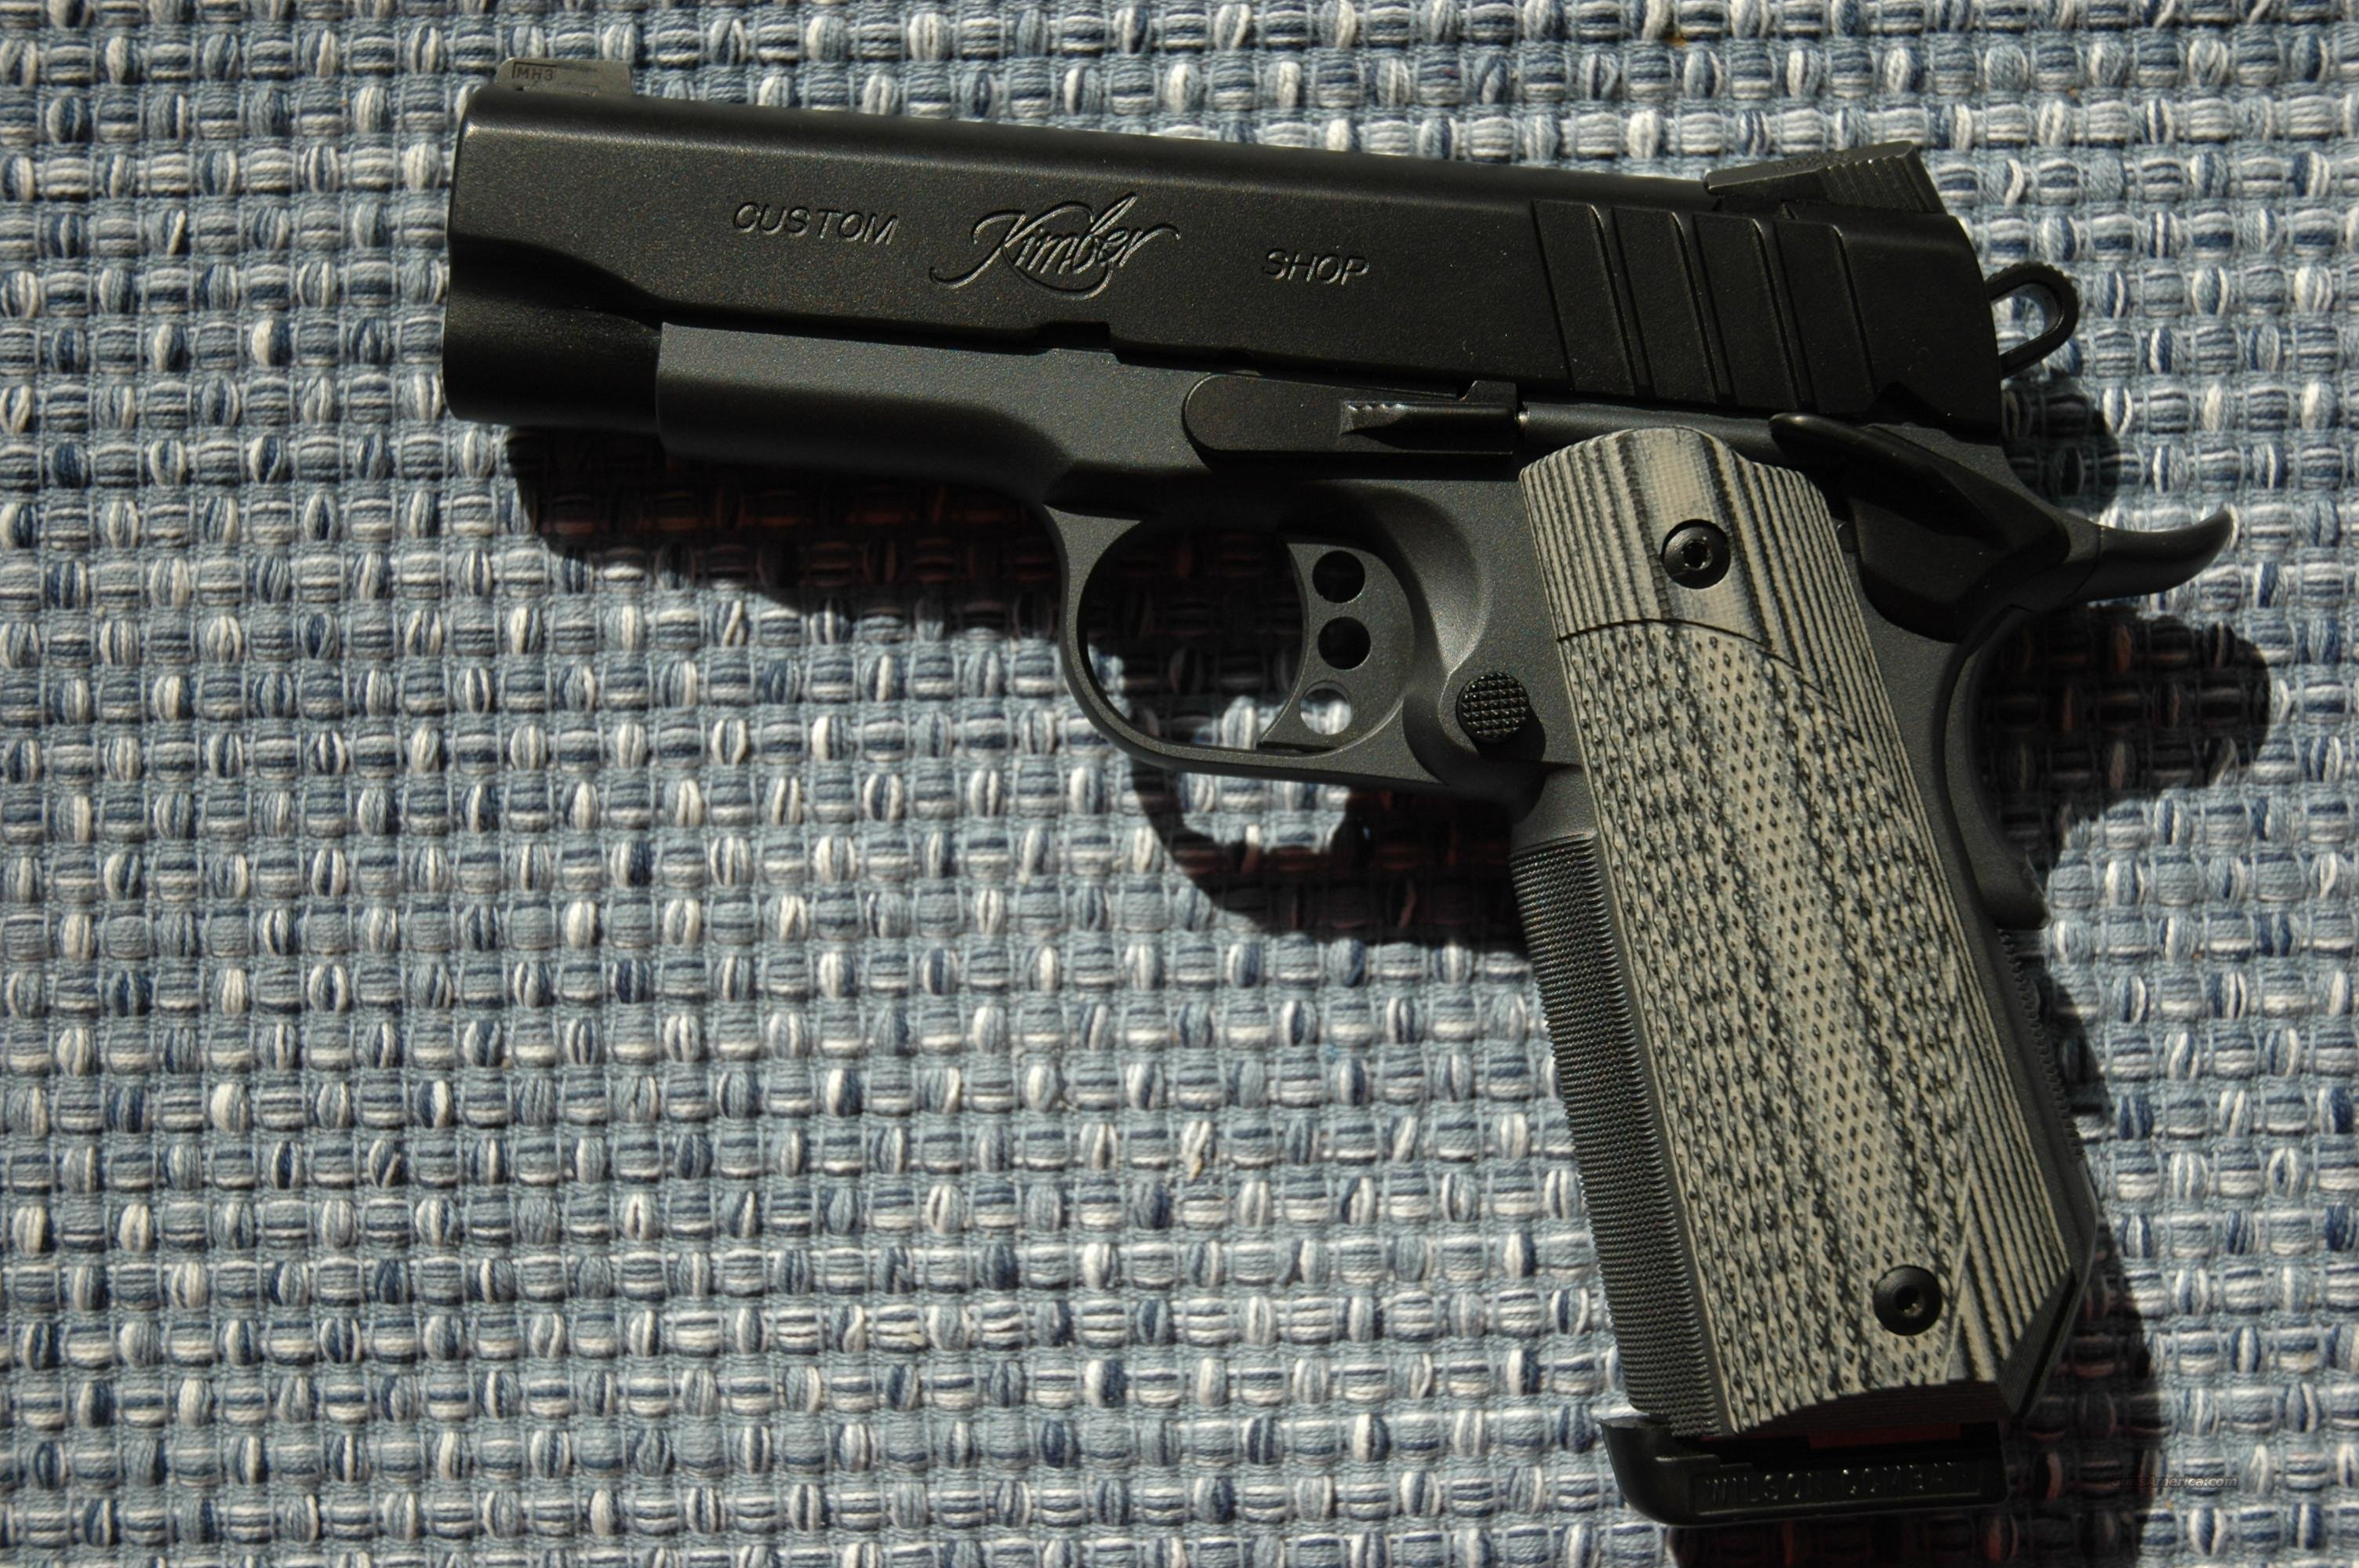 VZ 1911 bobtail ETC black/gray VZ G10   Non-Guns > Gunstocks, Grips & Wood